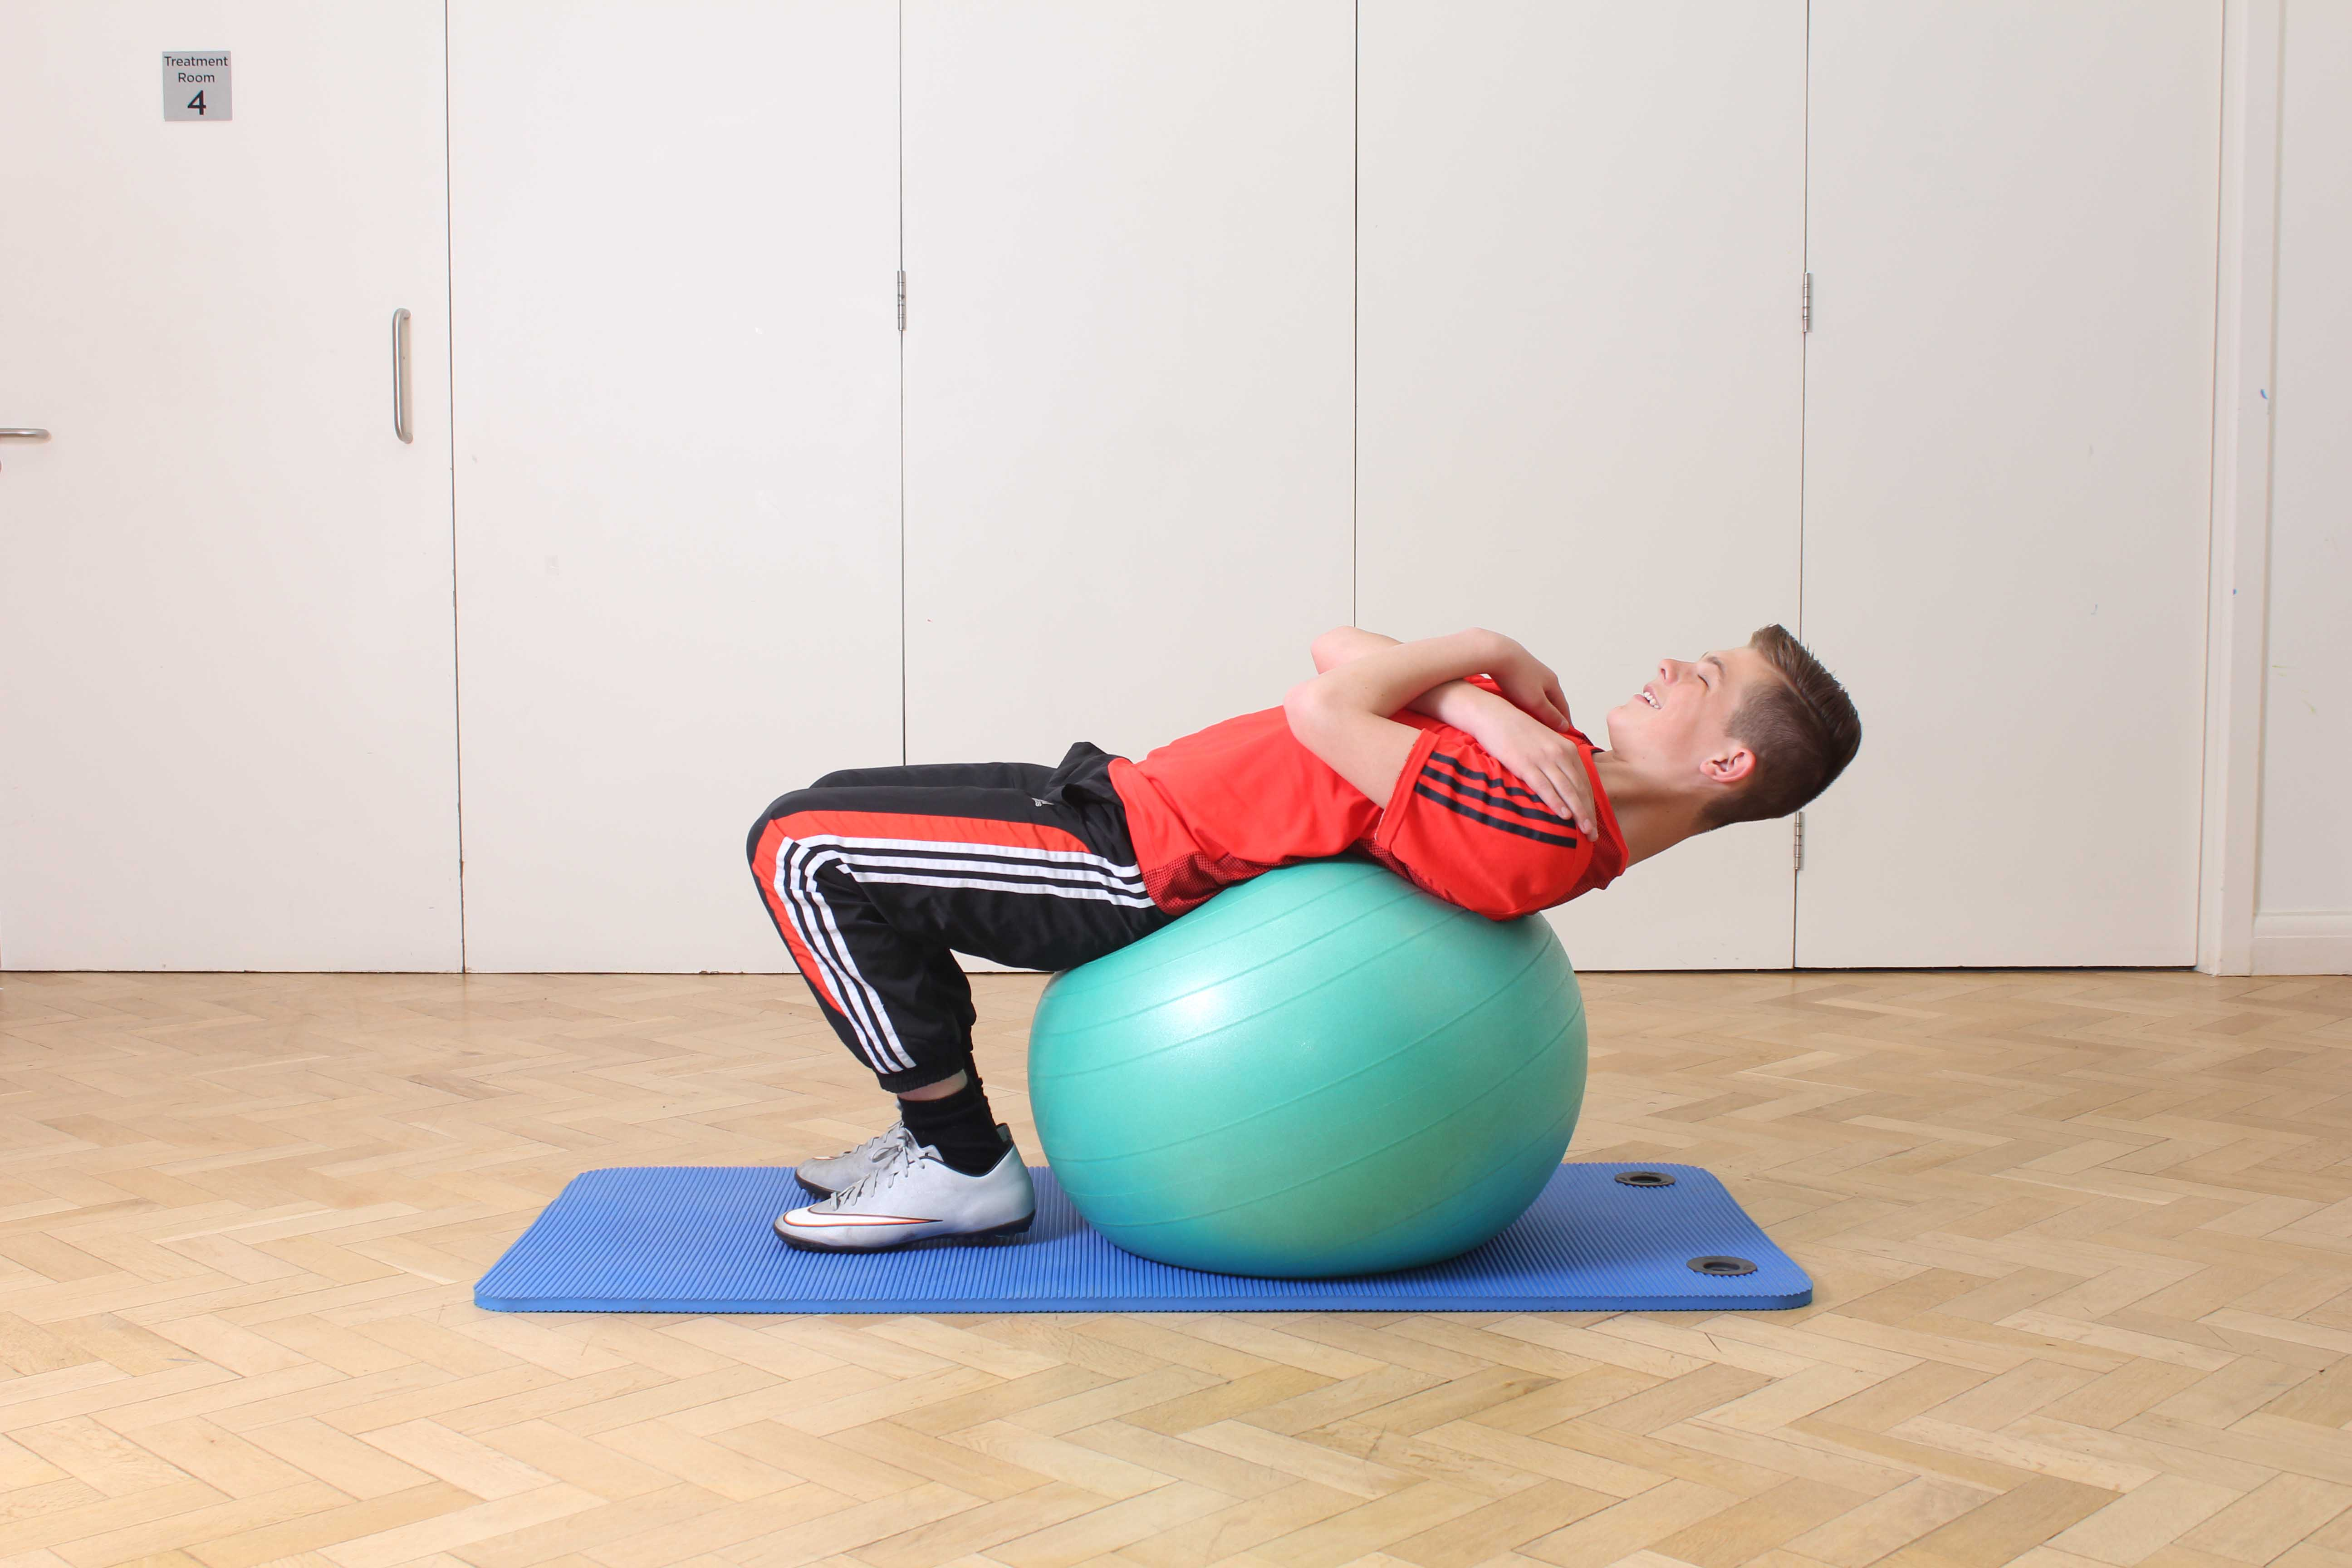 Toning and flexibility exercises performed under supervision of a paediatric physiotherapist